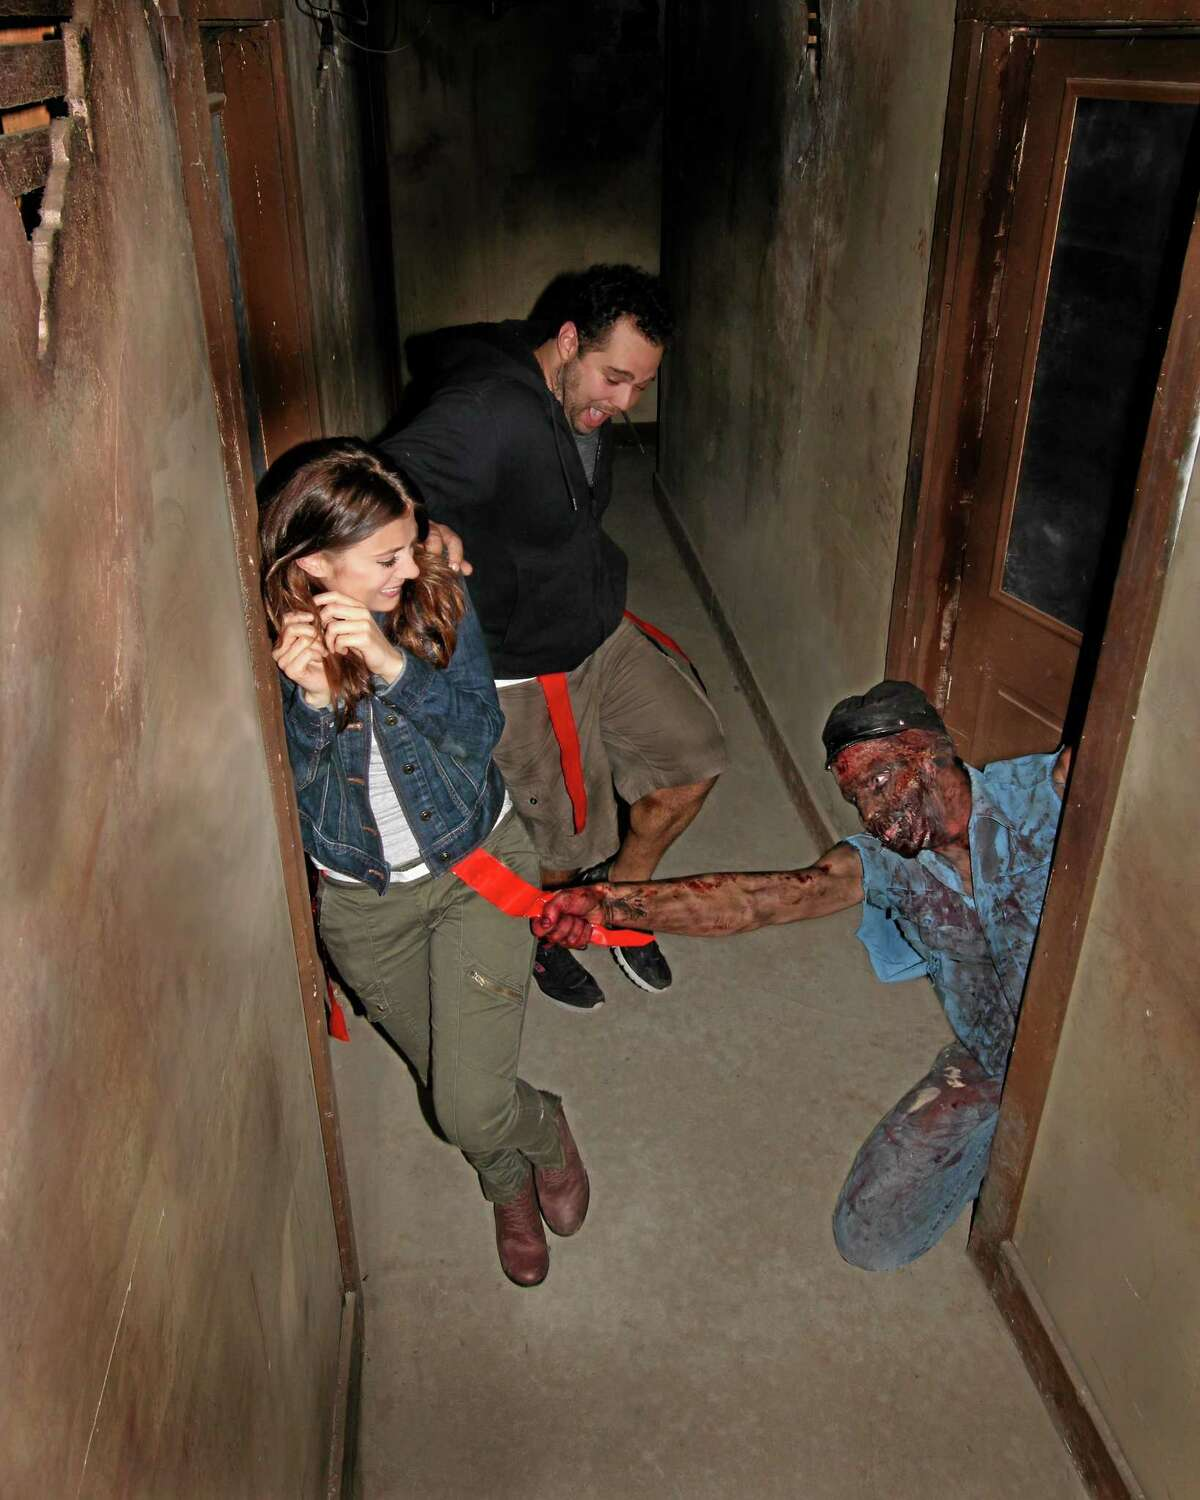 This August 2013 image, provided by Shocktoberfest, shows an actor portraying a zombie who grabs a flag from the belt of someone walking through the Prison of the Dead Escape, part of the Shocktoberfest attraction in Reading, Pa. The scene is considered tame compared to the realistic tableau in Mustang, Okla., where some residents find the display disturbing. (AP Photo/Shocktoberfest)